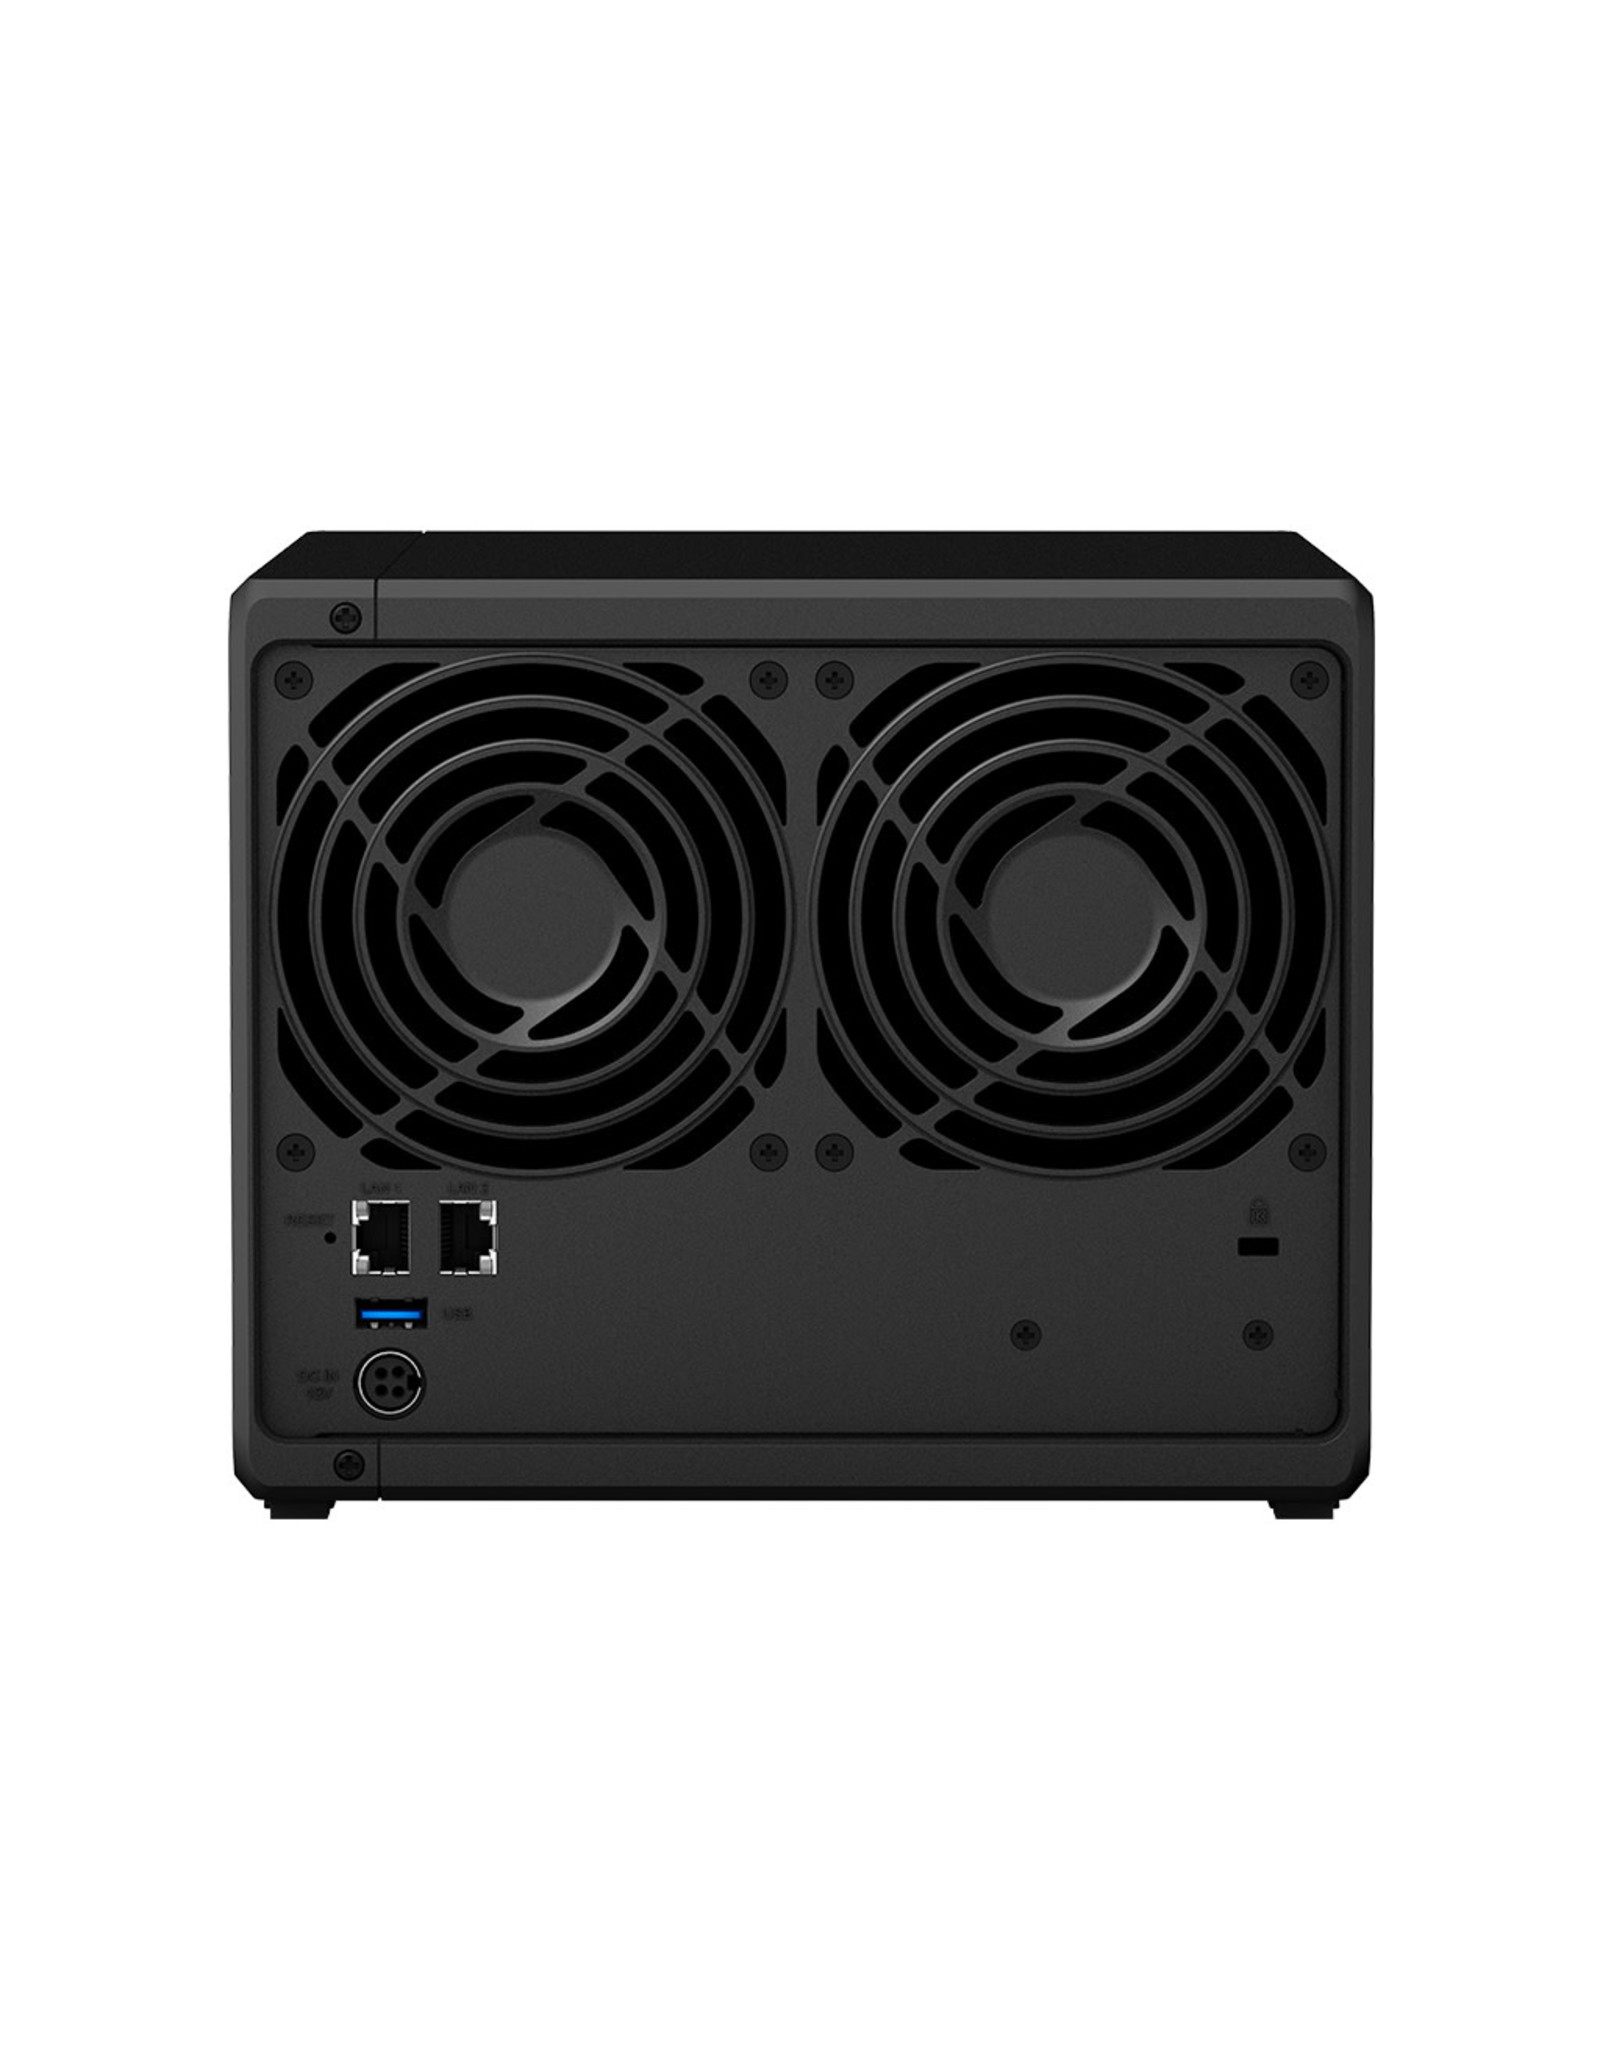 Synology Synology DS420+ 4-Bay Dual-core 2.0GHz NAS Server